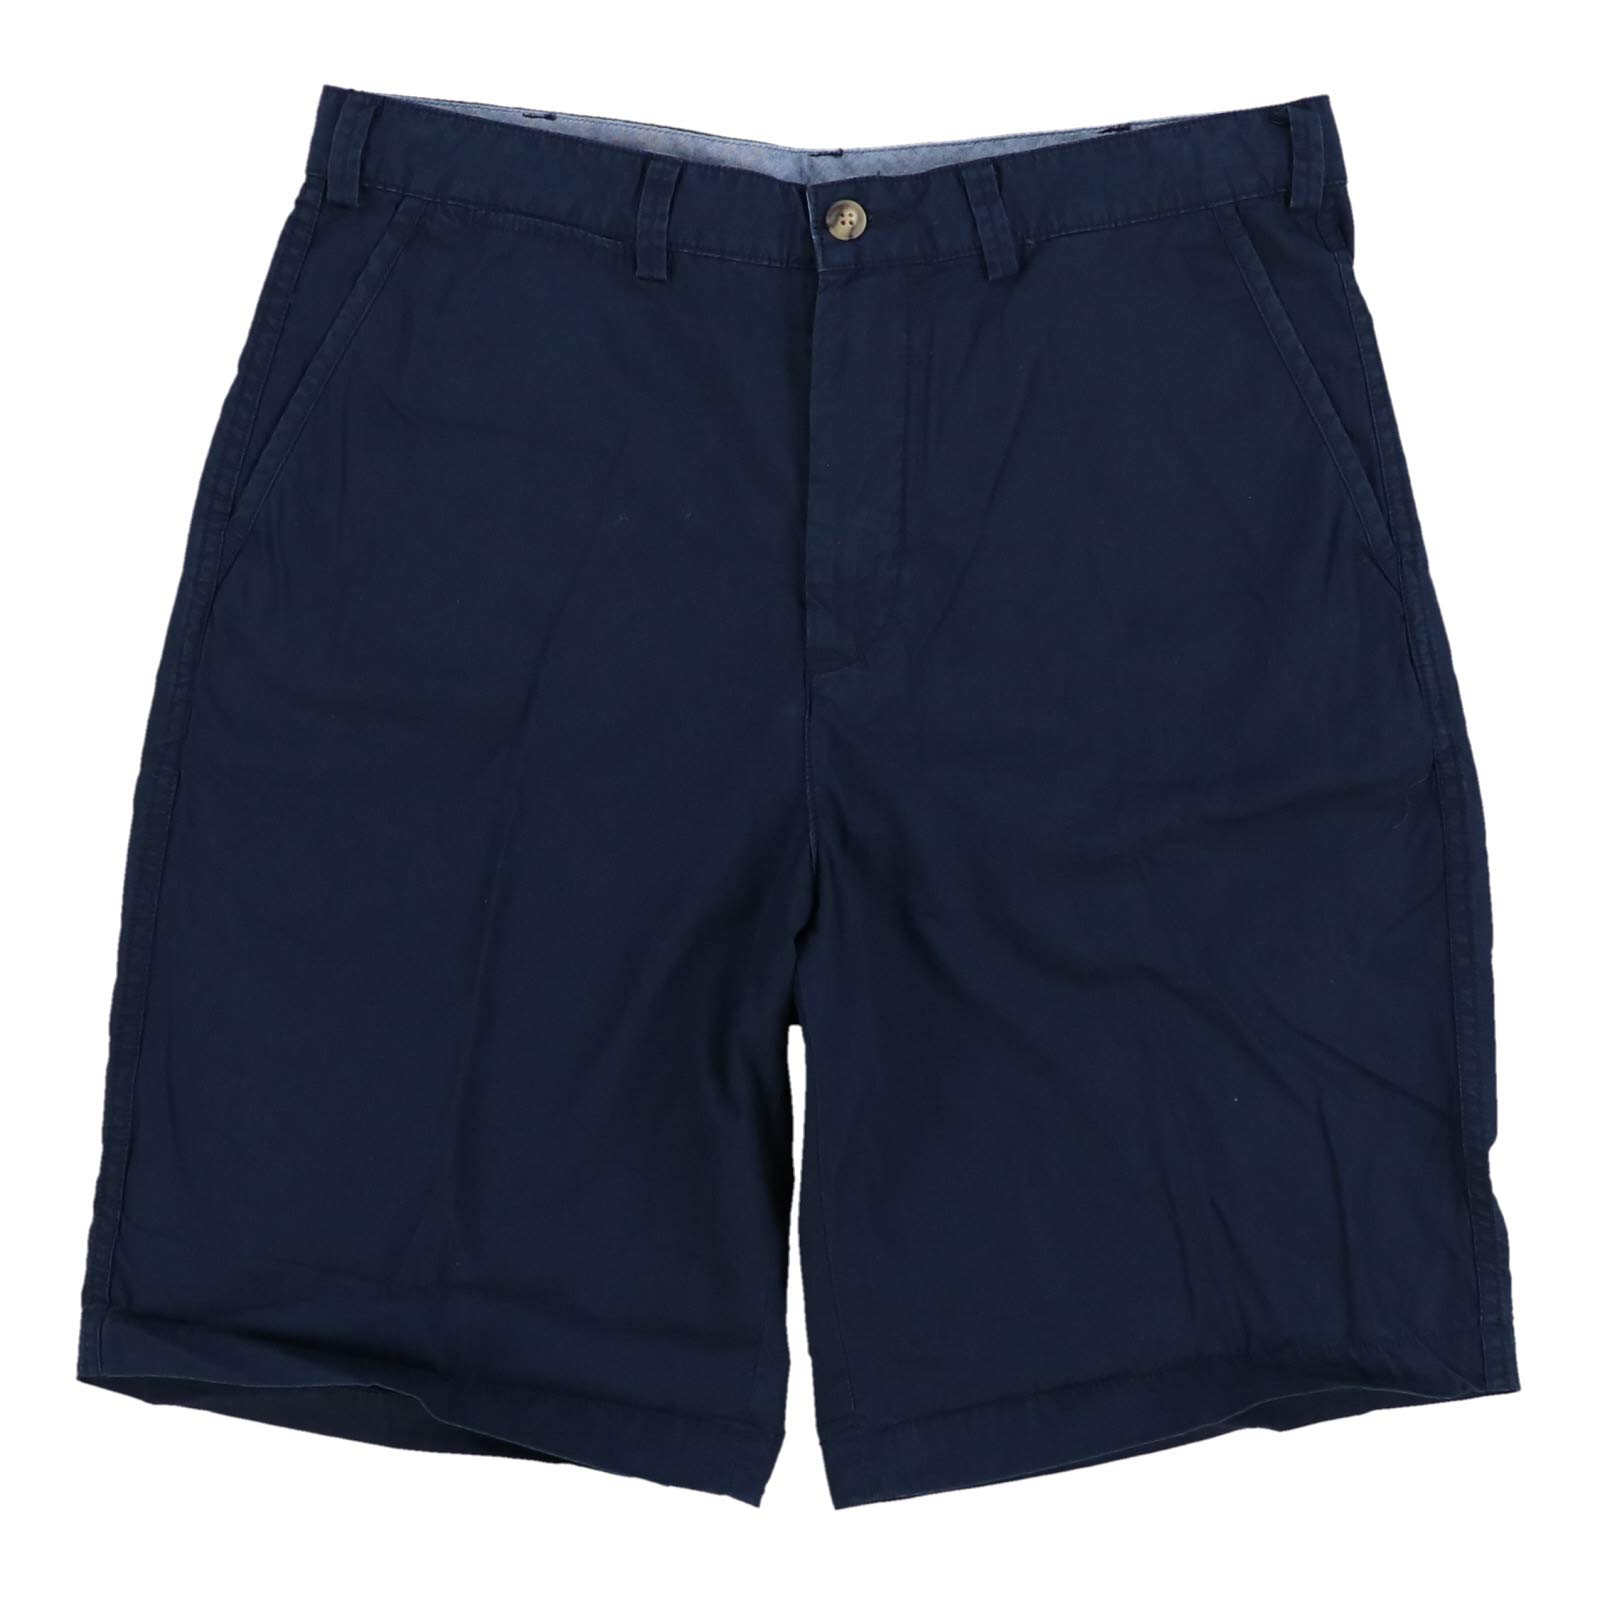 Polo Ralph Lauren Mens Classic-Fit Flat Front Casual Shorts, 35, Navy